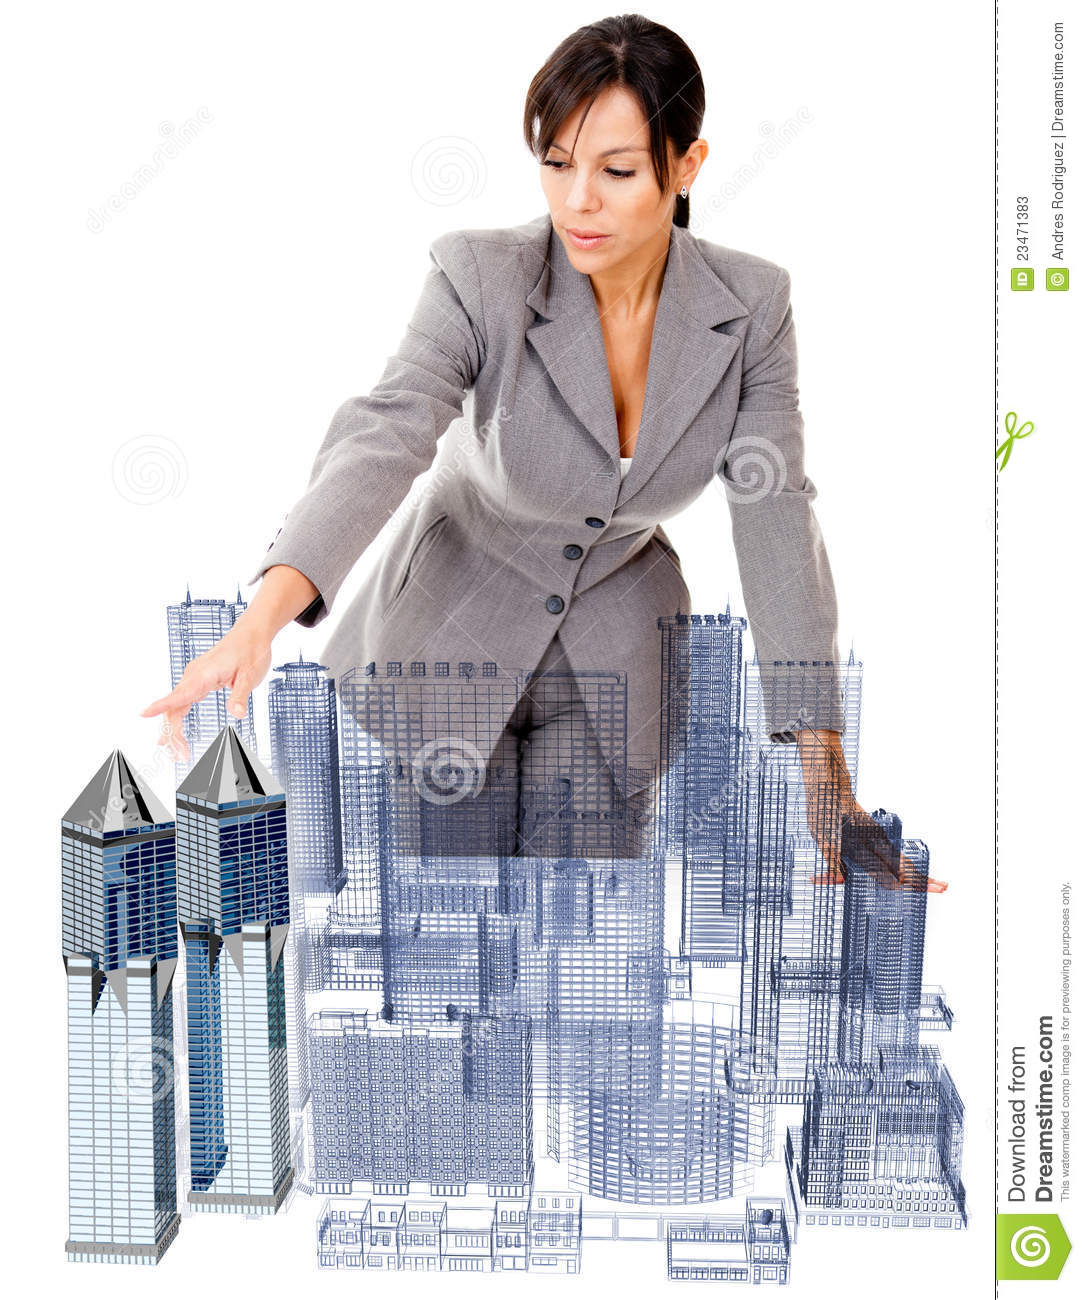 Female architect stock photos image 23471383 for How to be an architect